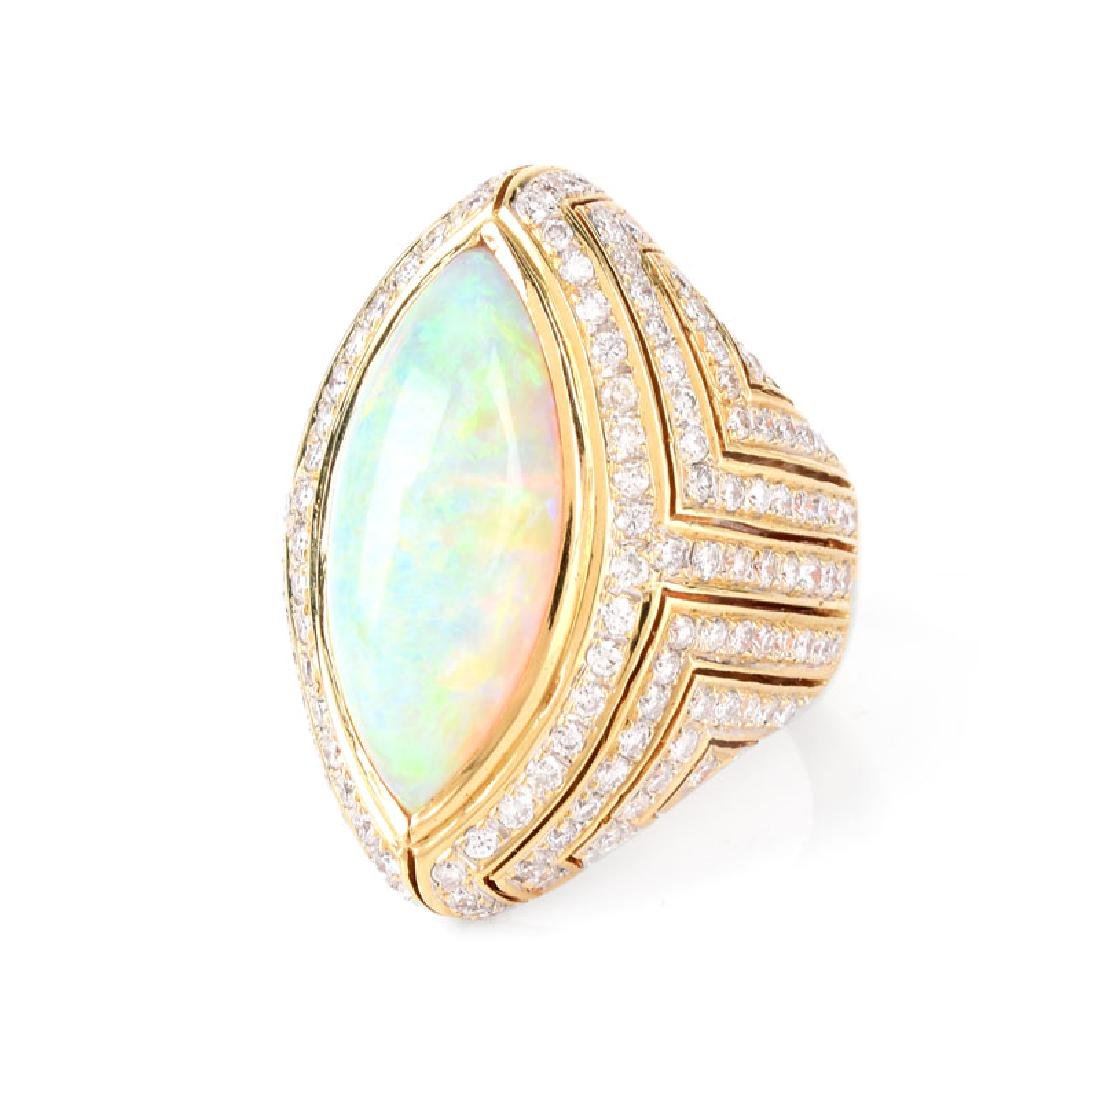 Vintage Approx. 12.0 Carat Marquise Cabochon Opal, 3.0 - 3